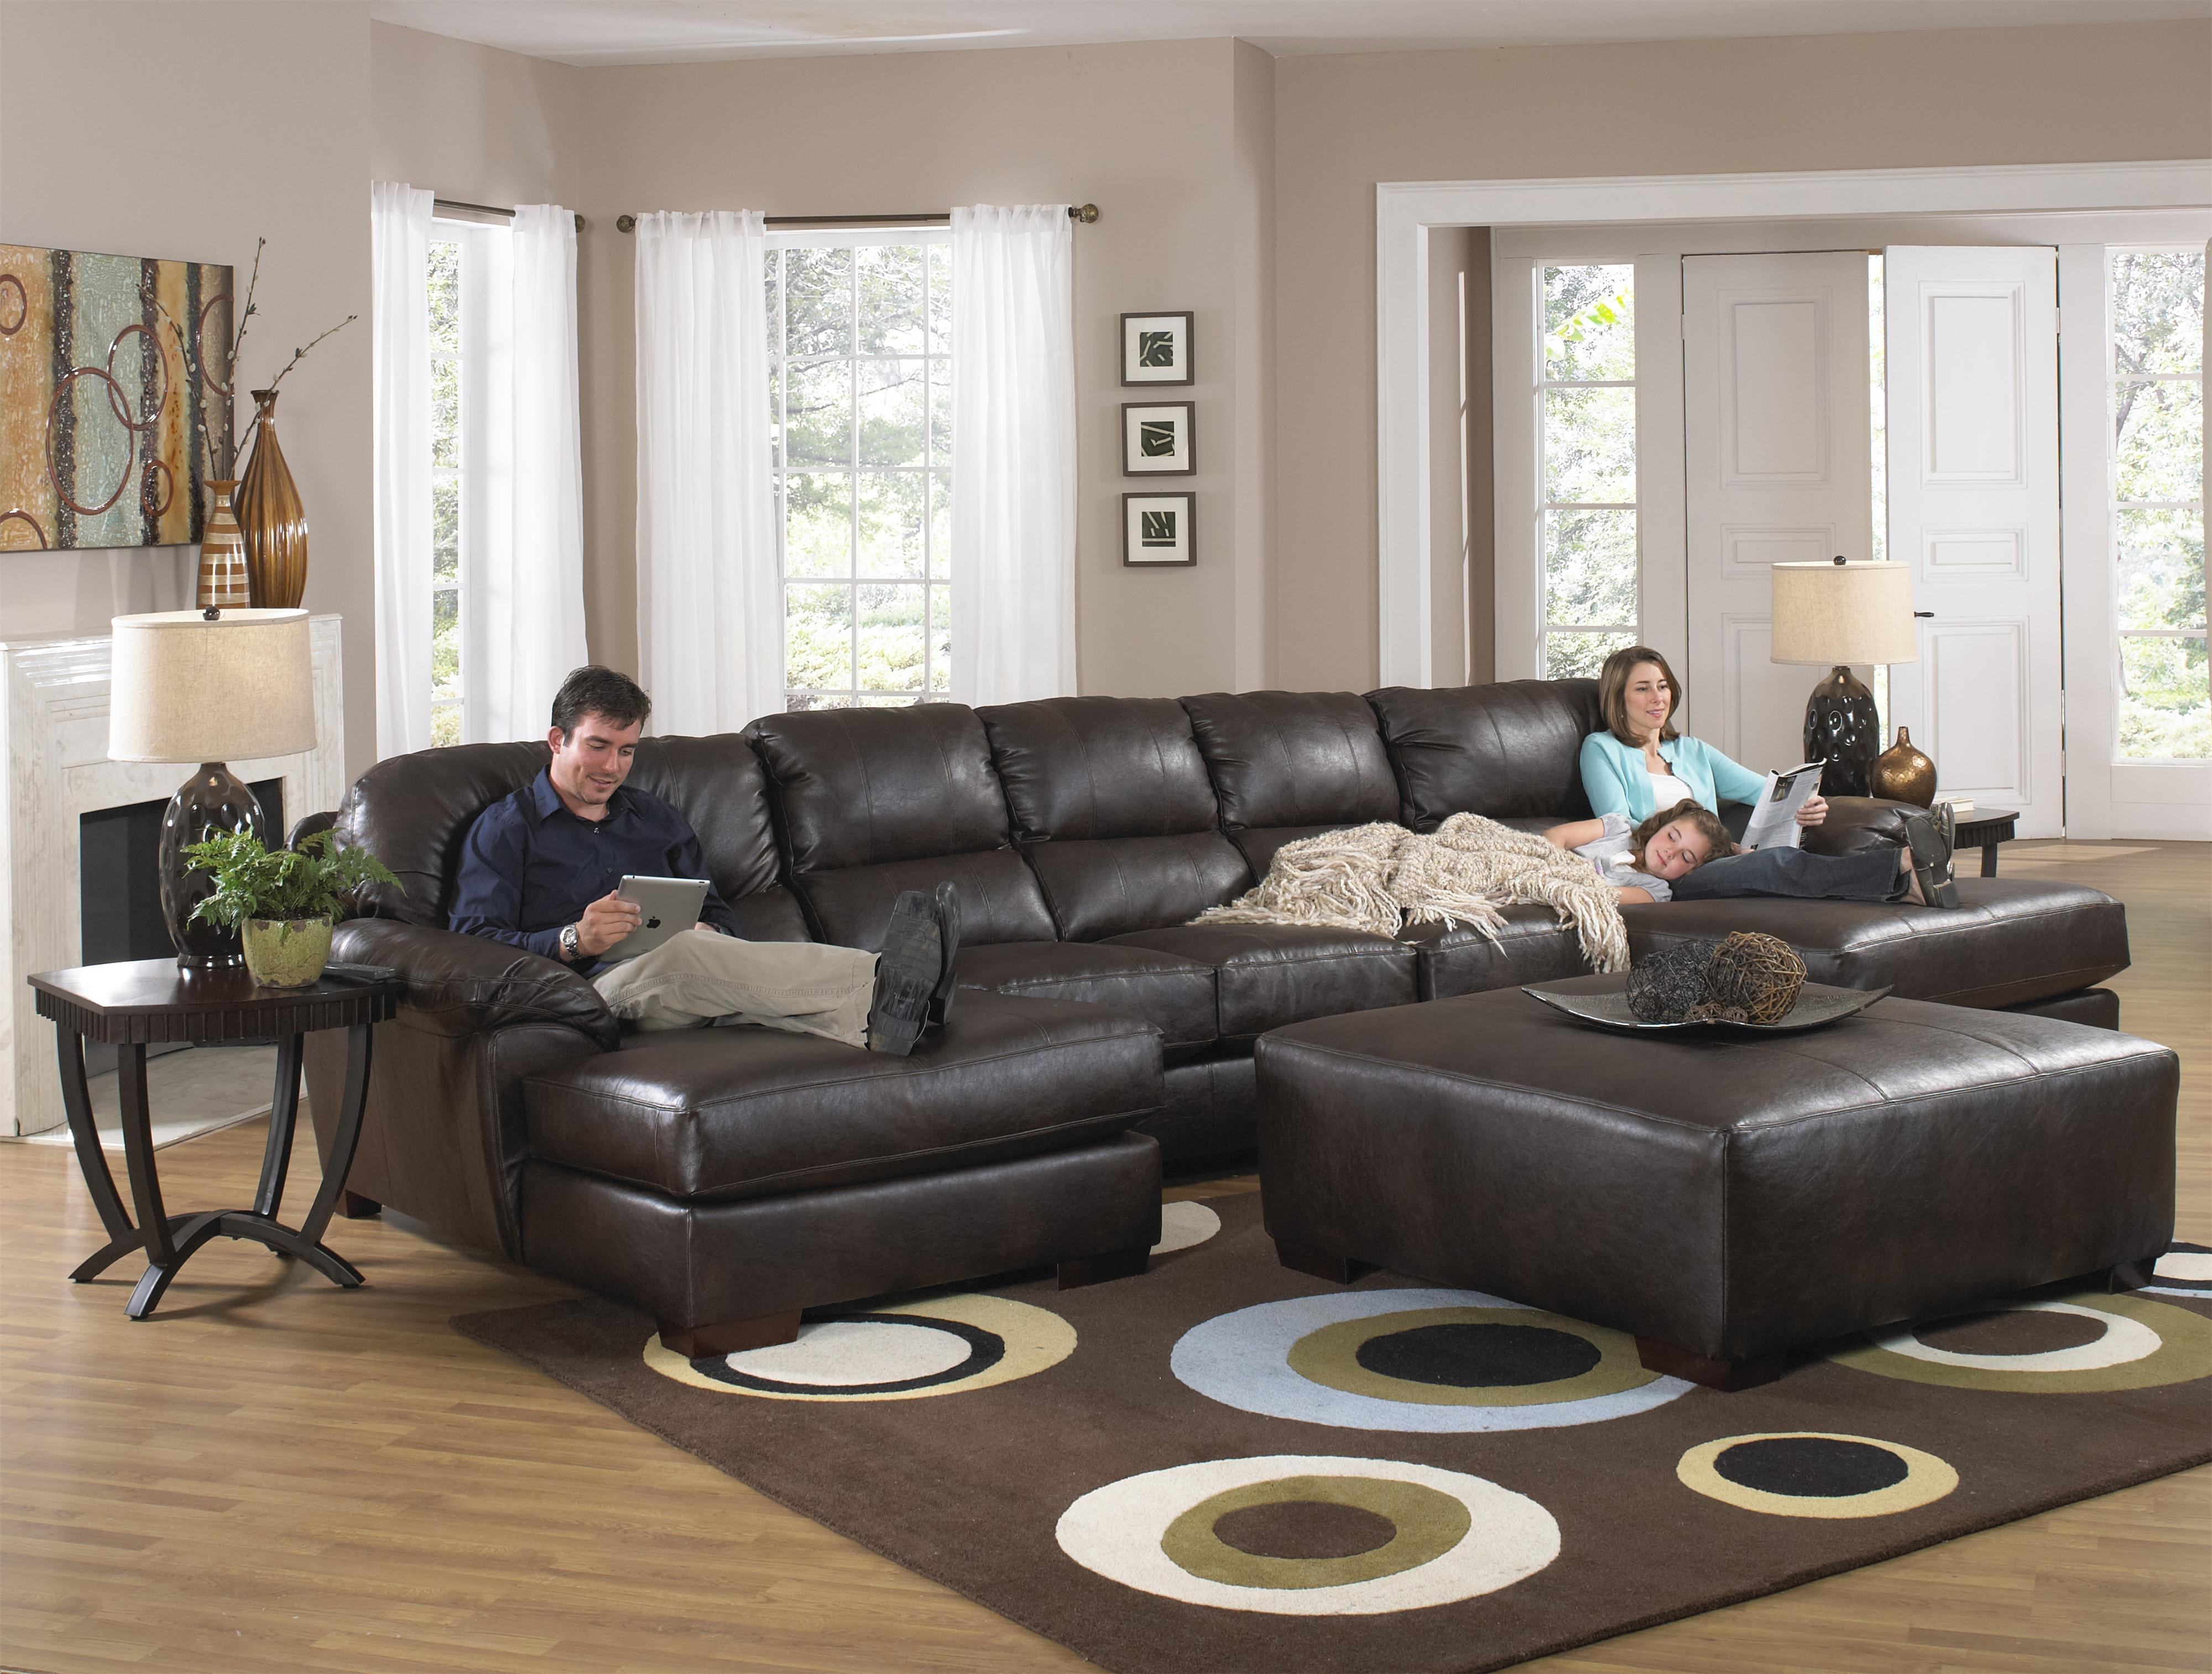 Fashionable Sofa And Chaise Sets Inside Two Chaise Sectional Sofa With Five Total Seatsjackson (View 3 of 15)